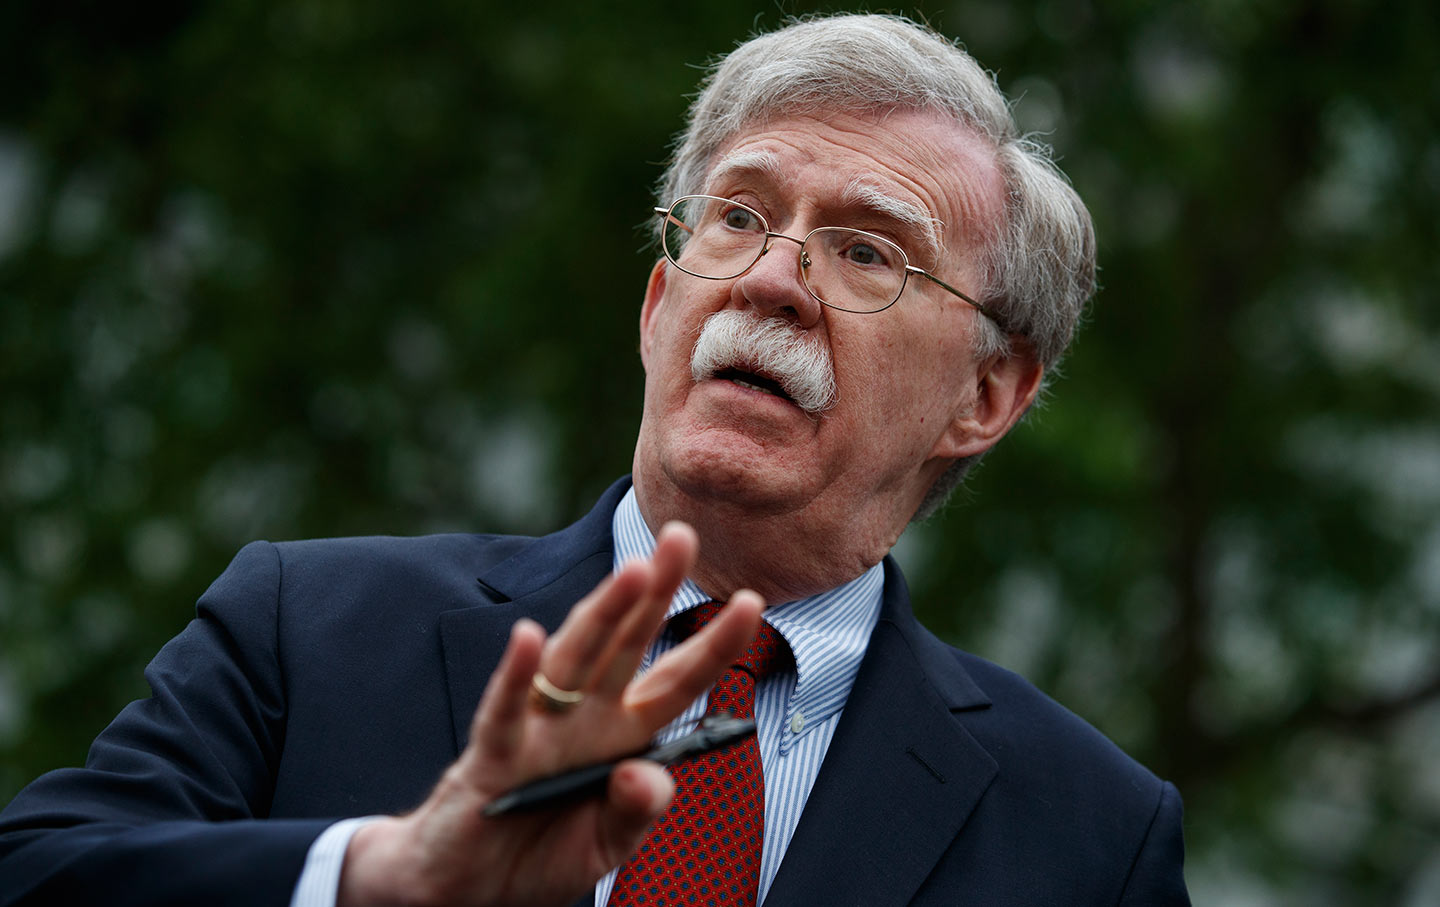 Bolton left the White House in September 2019 in a public eruption of vitriol on both sides over the terms of his departure